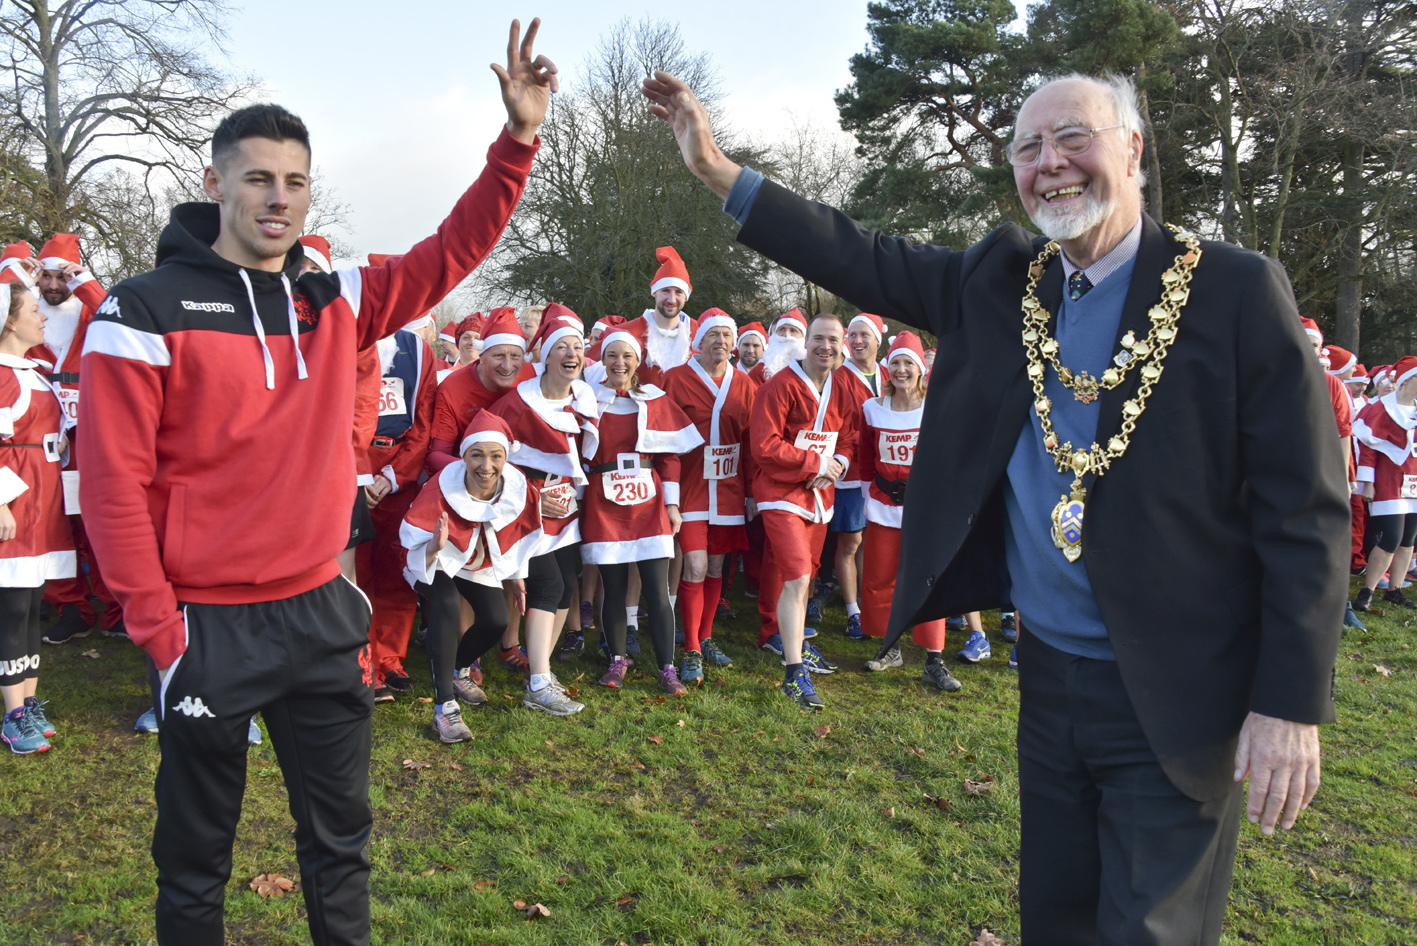 ON YOUR MARKS: Kidderminster Harriers midfielder Ed Williams and town Mayor Cllr Martin Stooke